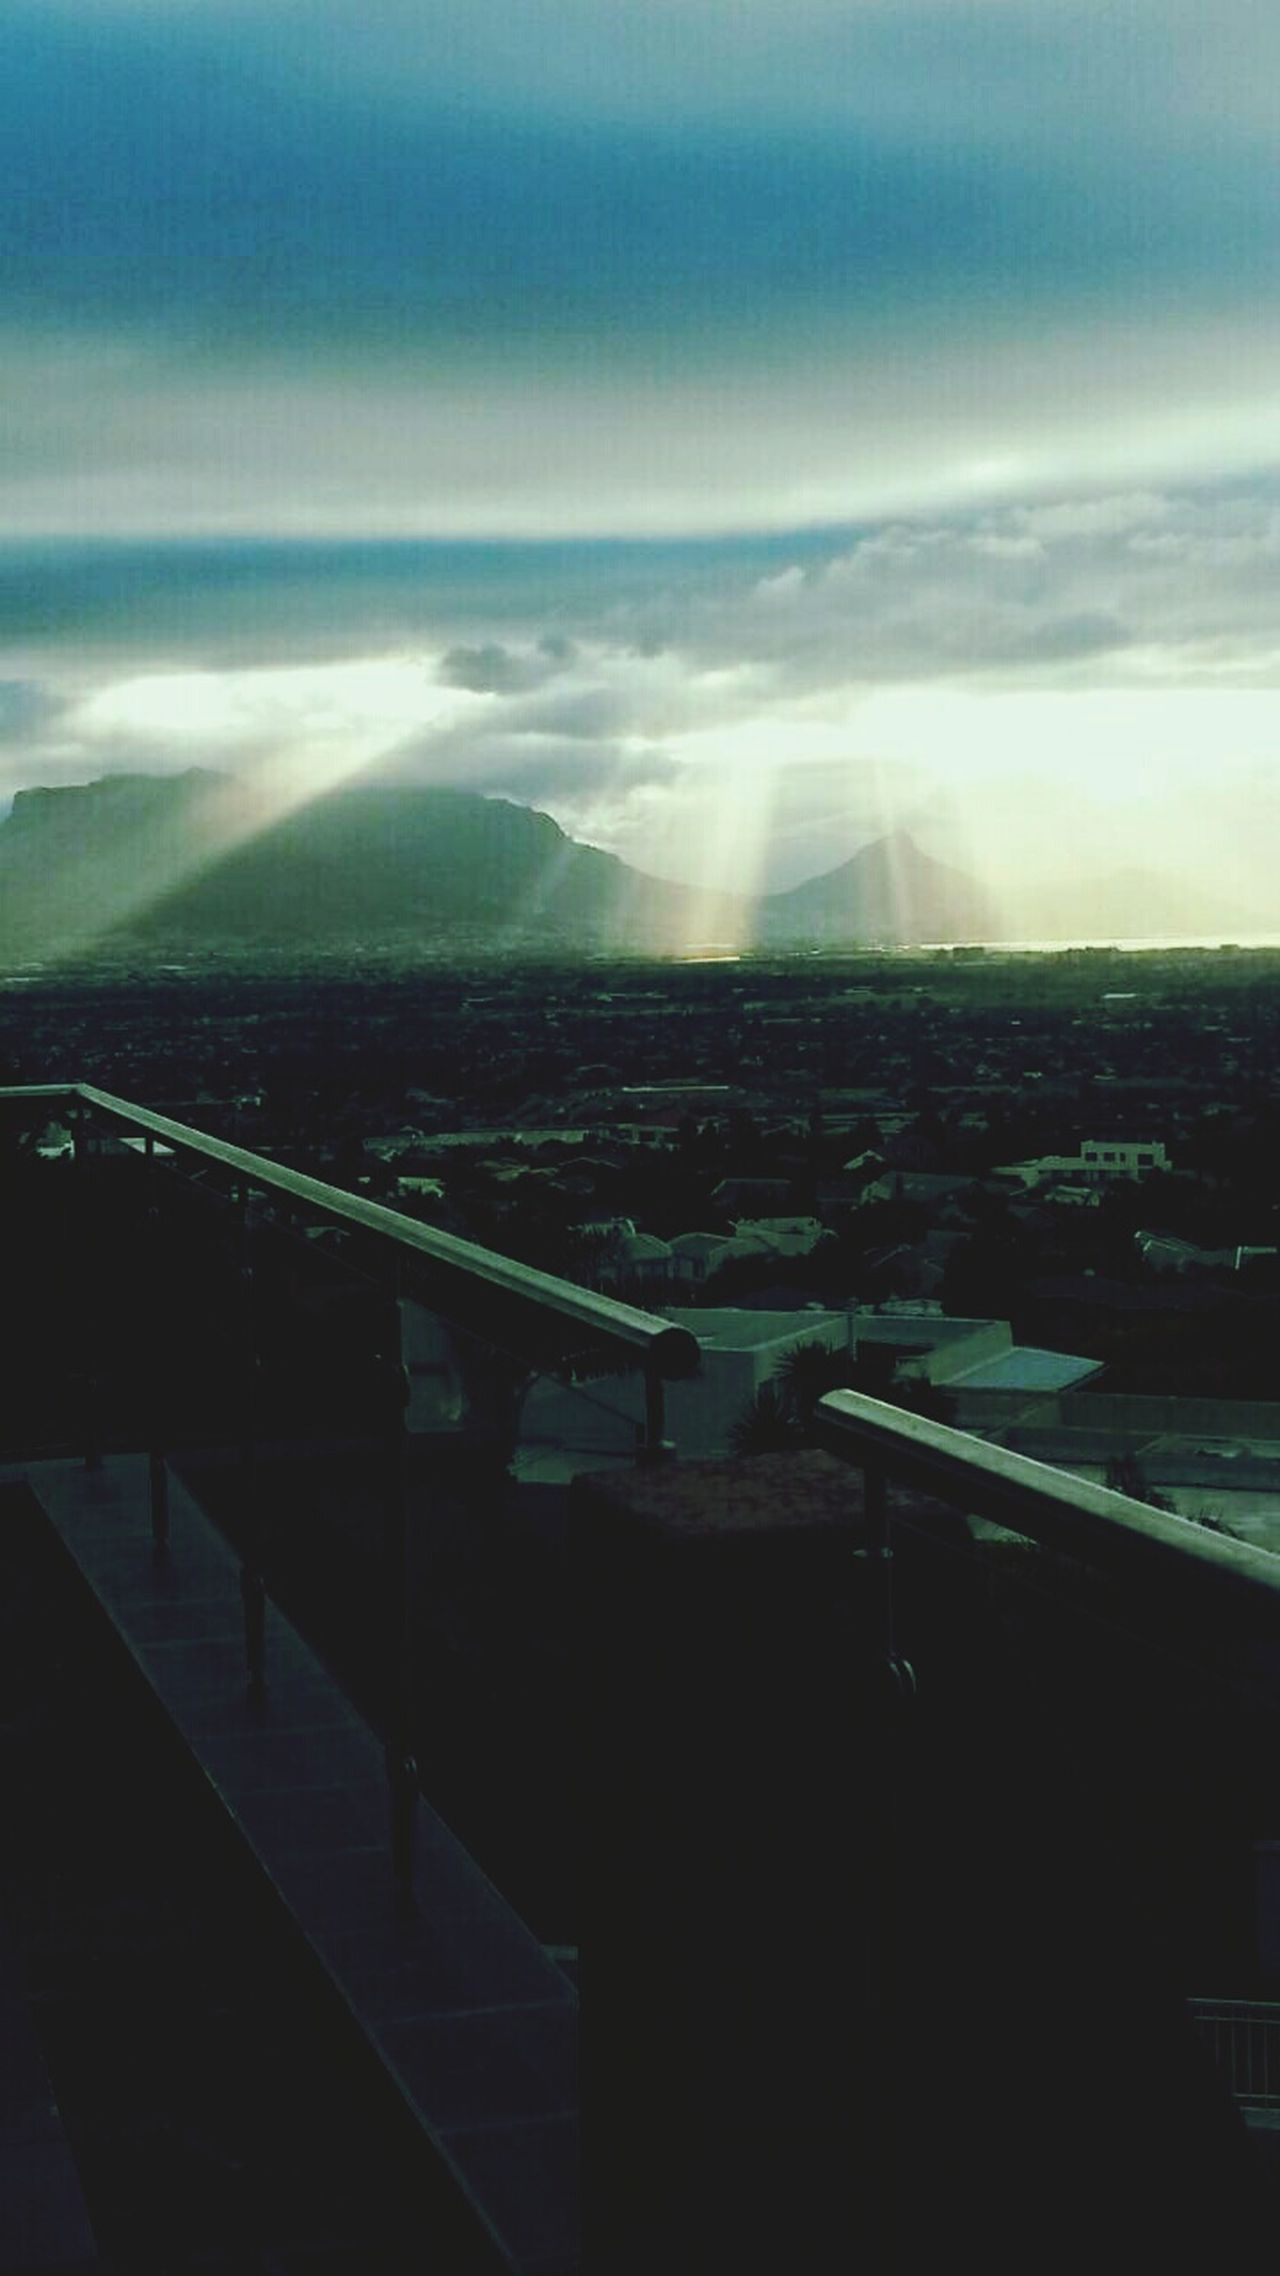 Cloud - Sky Outdoors Sky No People Nature Day Coolair Tranquility Scenics Relaxed Sunbeam Sunset Spotlight Urban Architecture Urban Geometry Urban Skyline